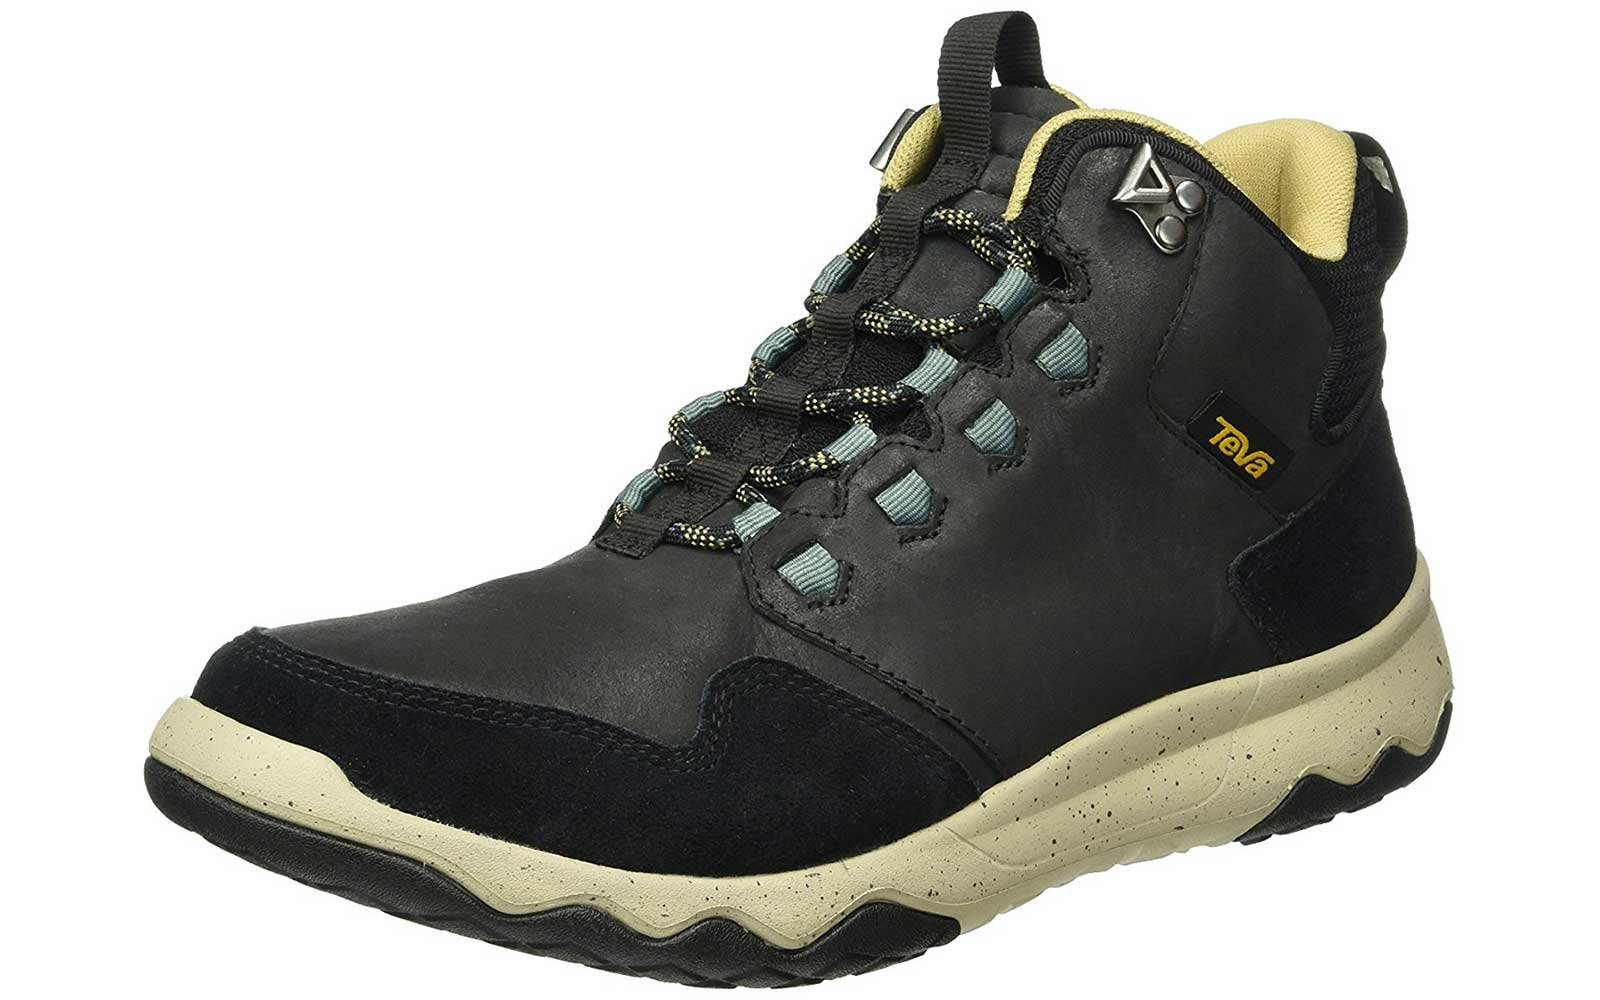 Teva Arrowood Lux Mid Waterproof Boot